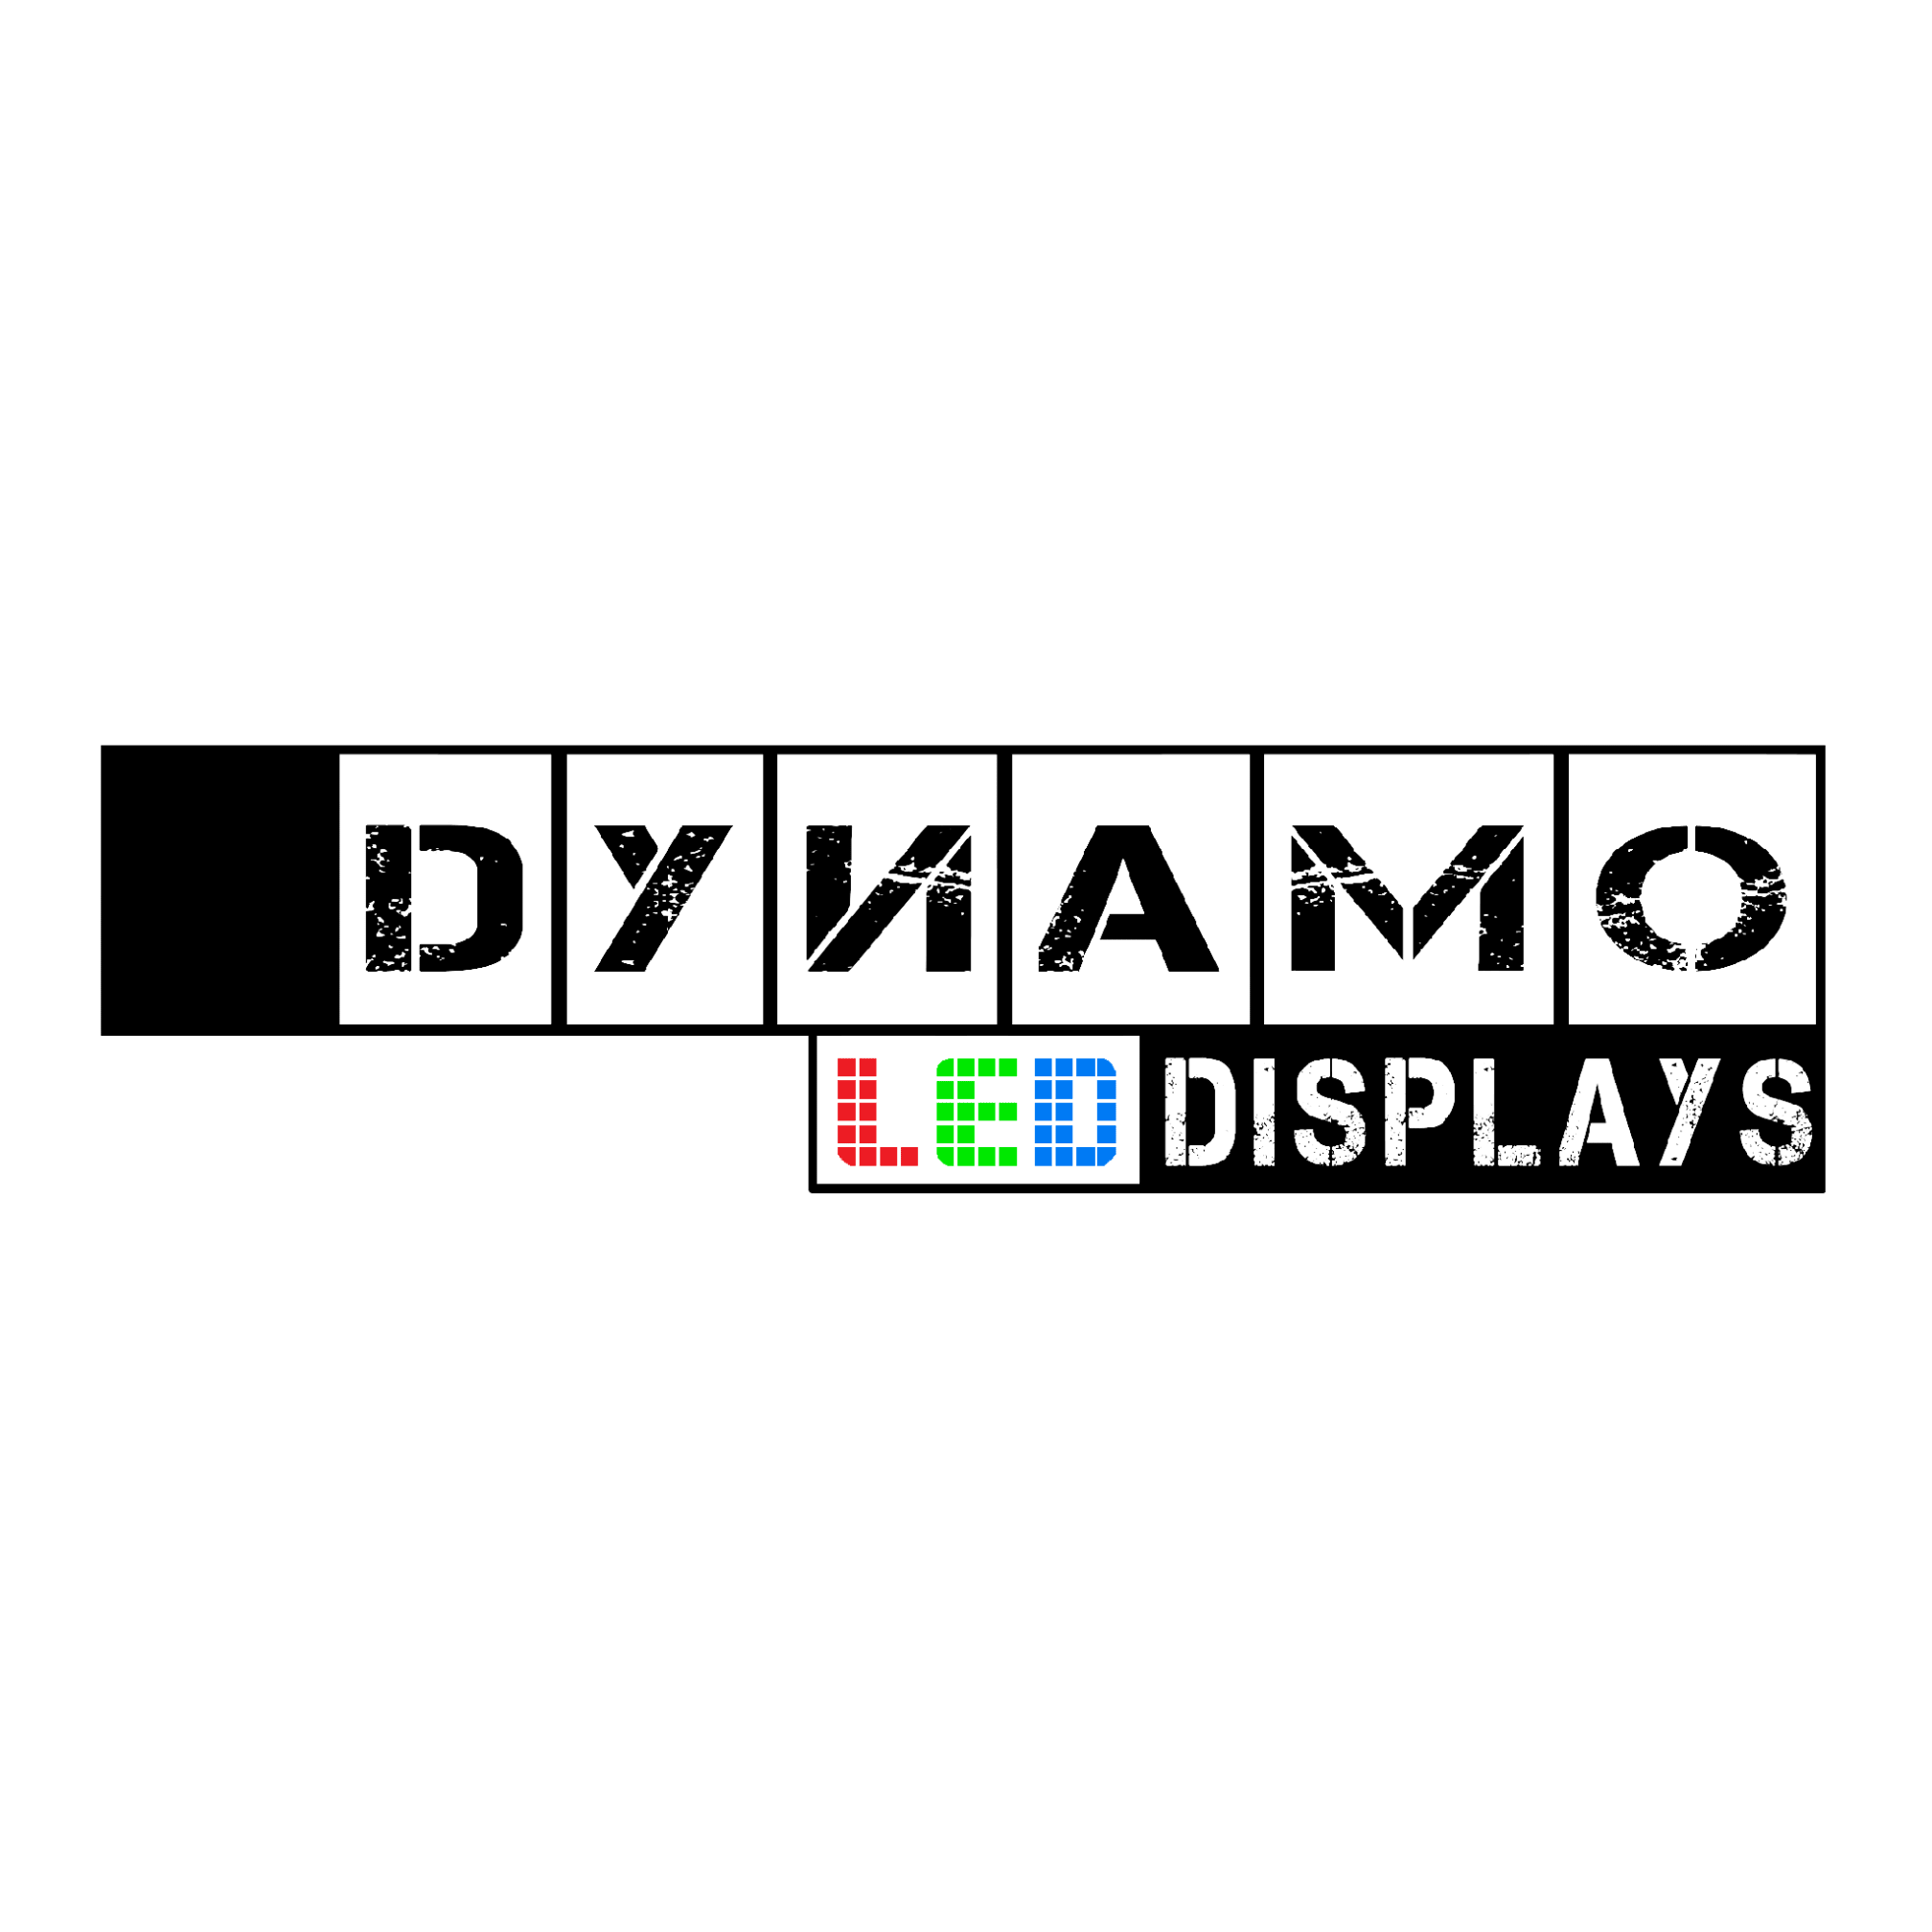 Dynamo Led Displays - London, London E1 6RU - 020 3489 9878 | ShowMeLocal.com